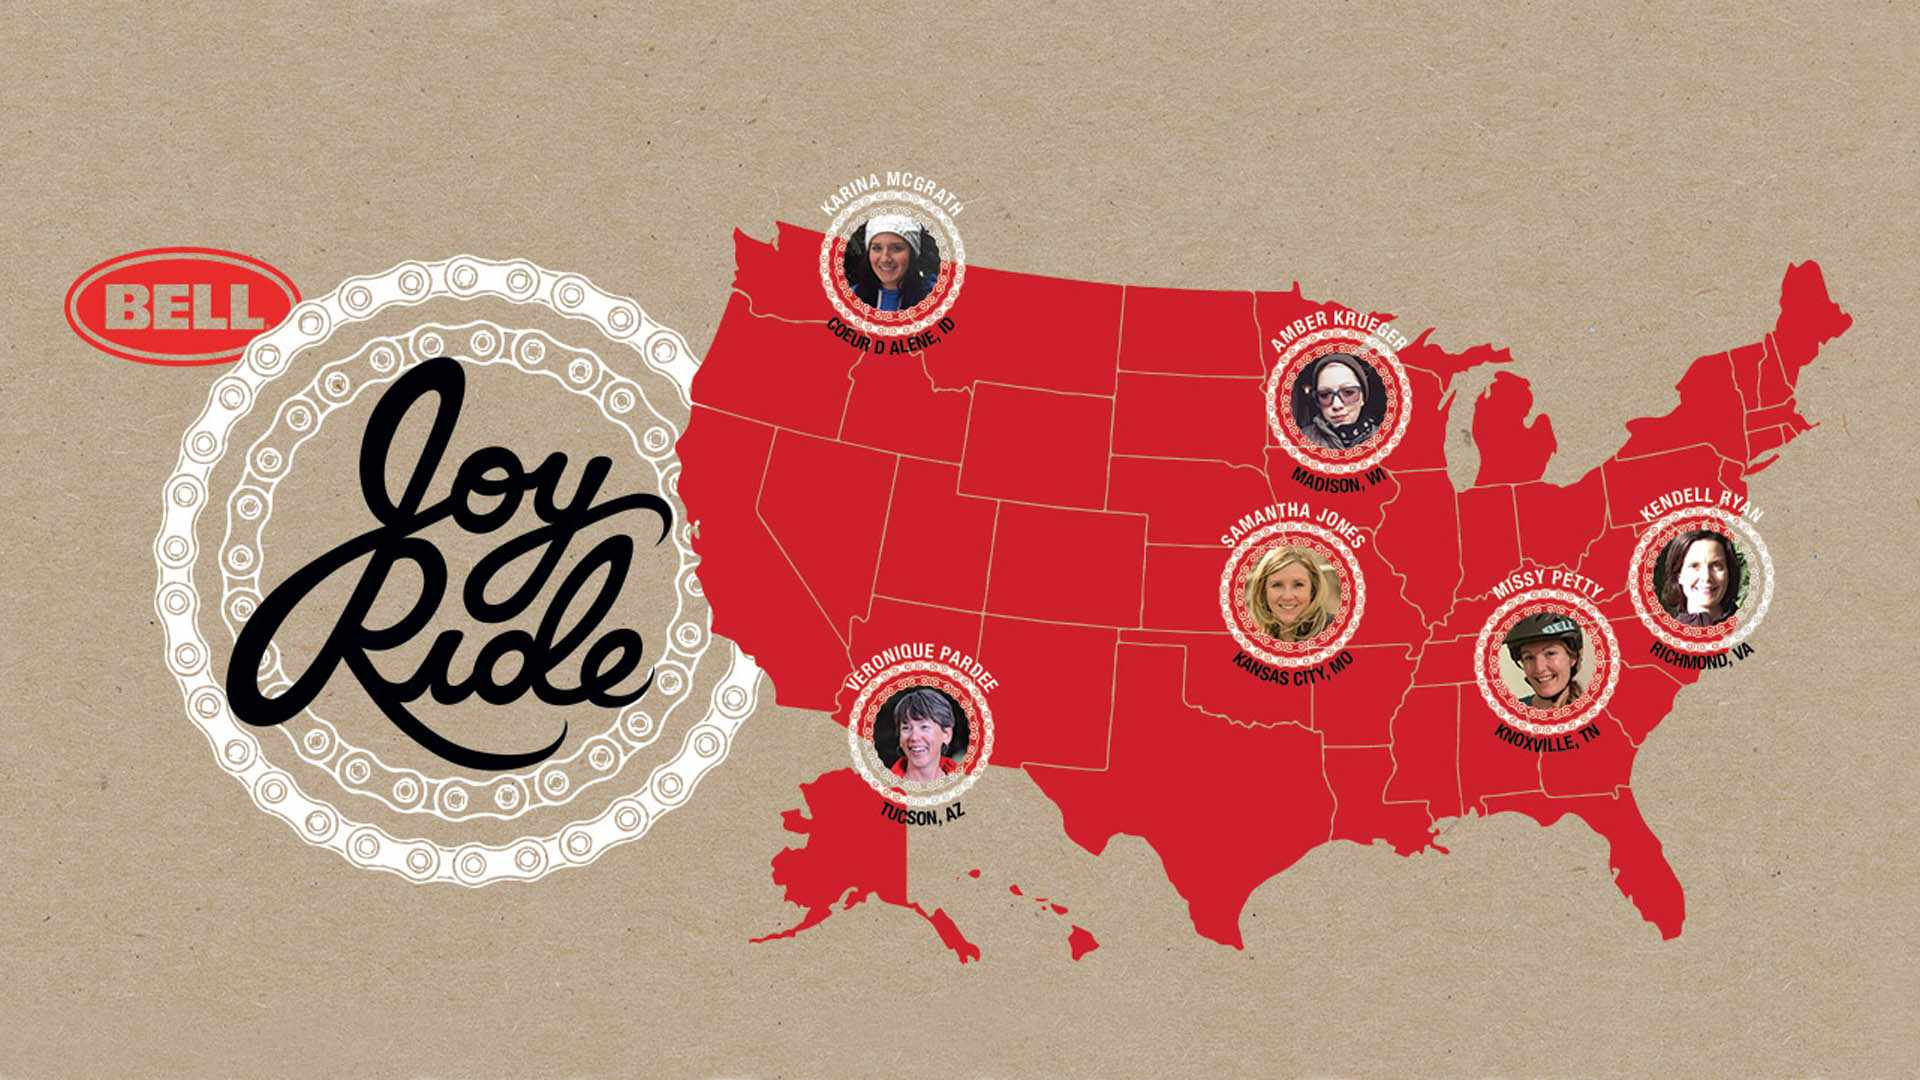 The Bell Joy Ride initiative now has six ambassadors, who'll be running women's mountain bike rides across the US